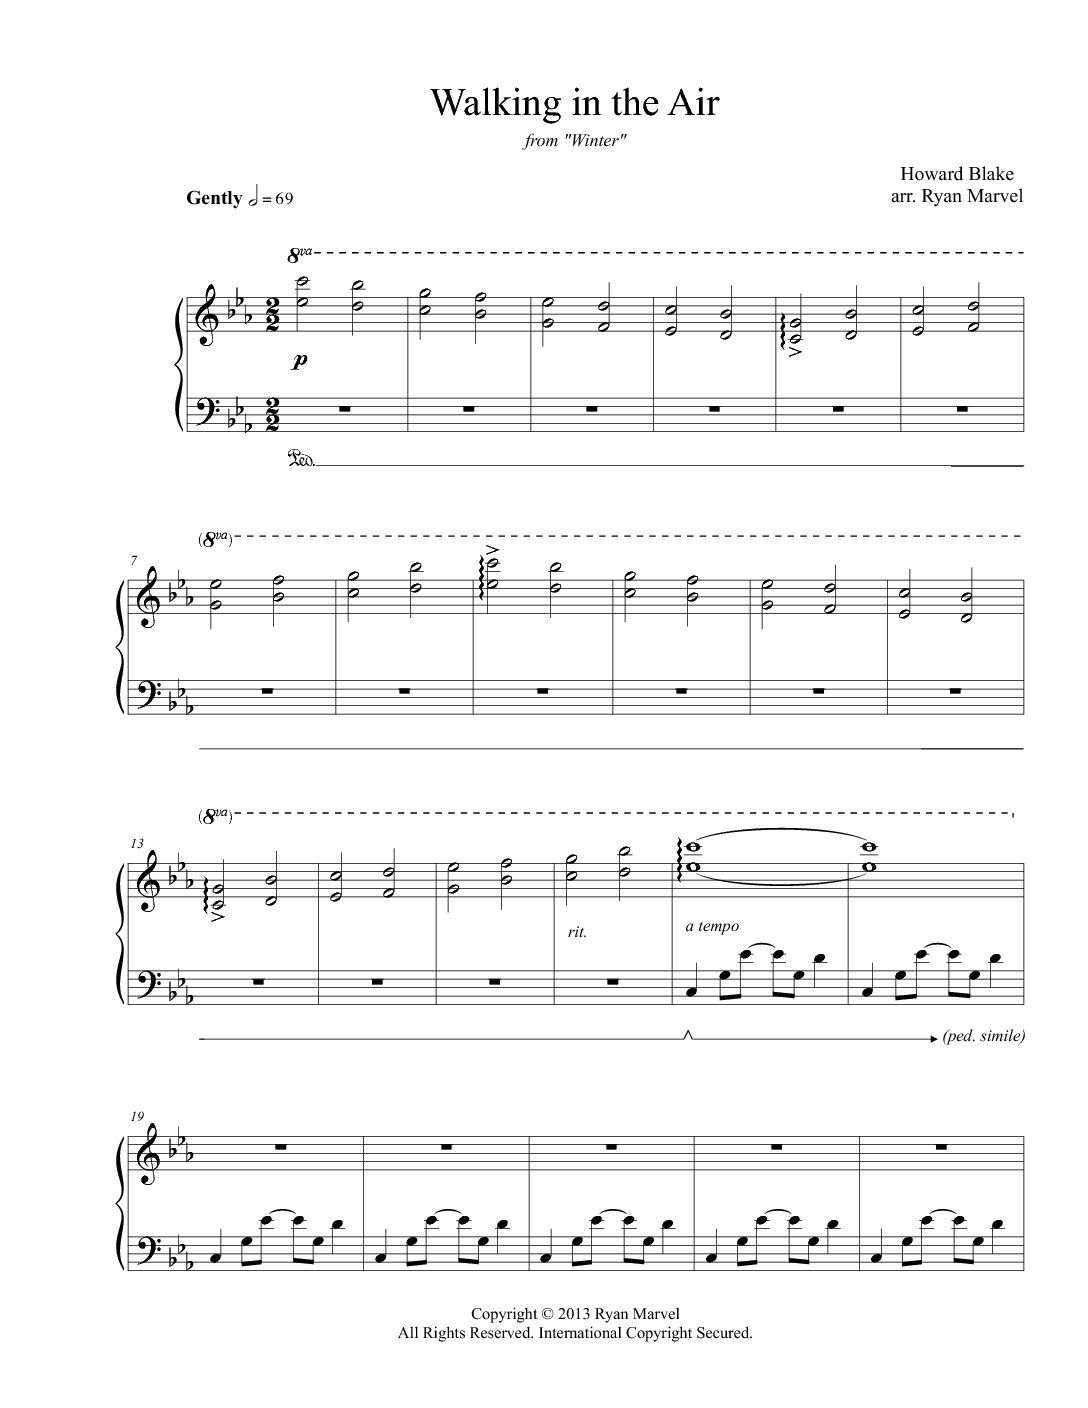 Have Yourself A Merry Little Christmas Piano Sheet Music.Have Yourself A Merry Little Christmas Sheet Music